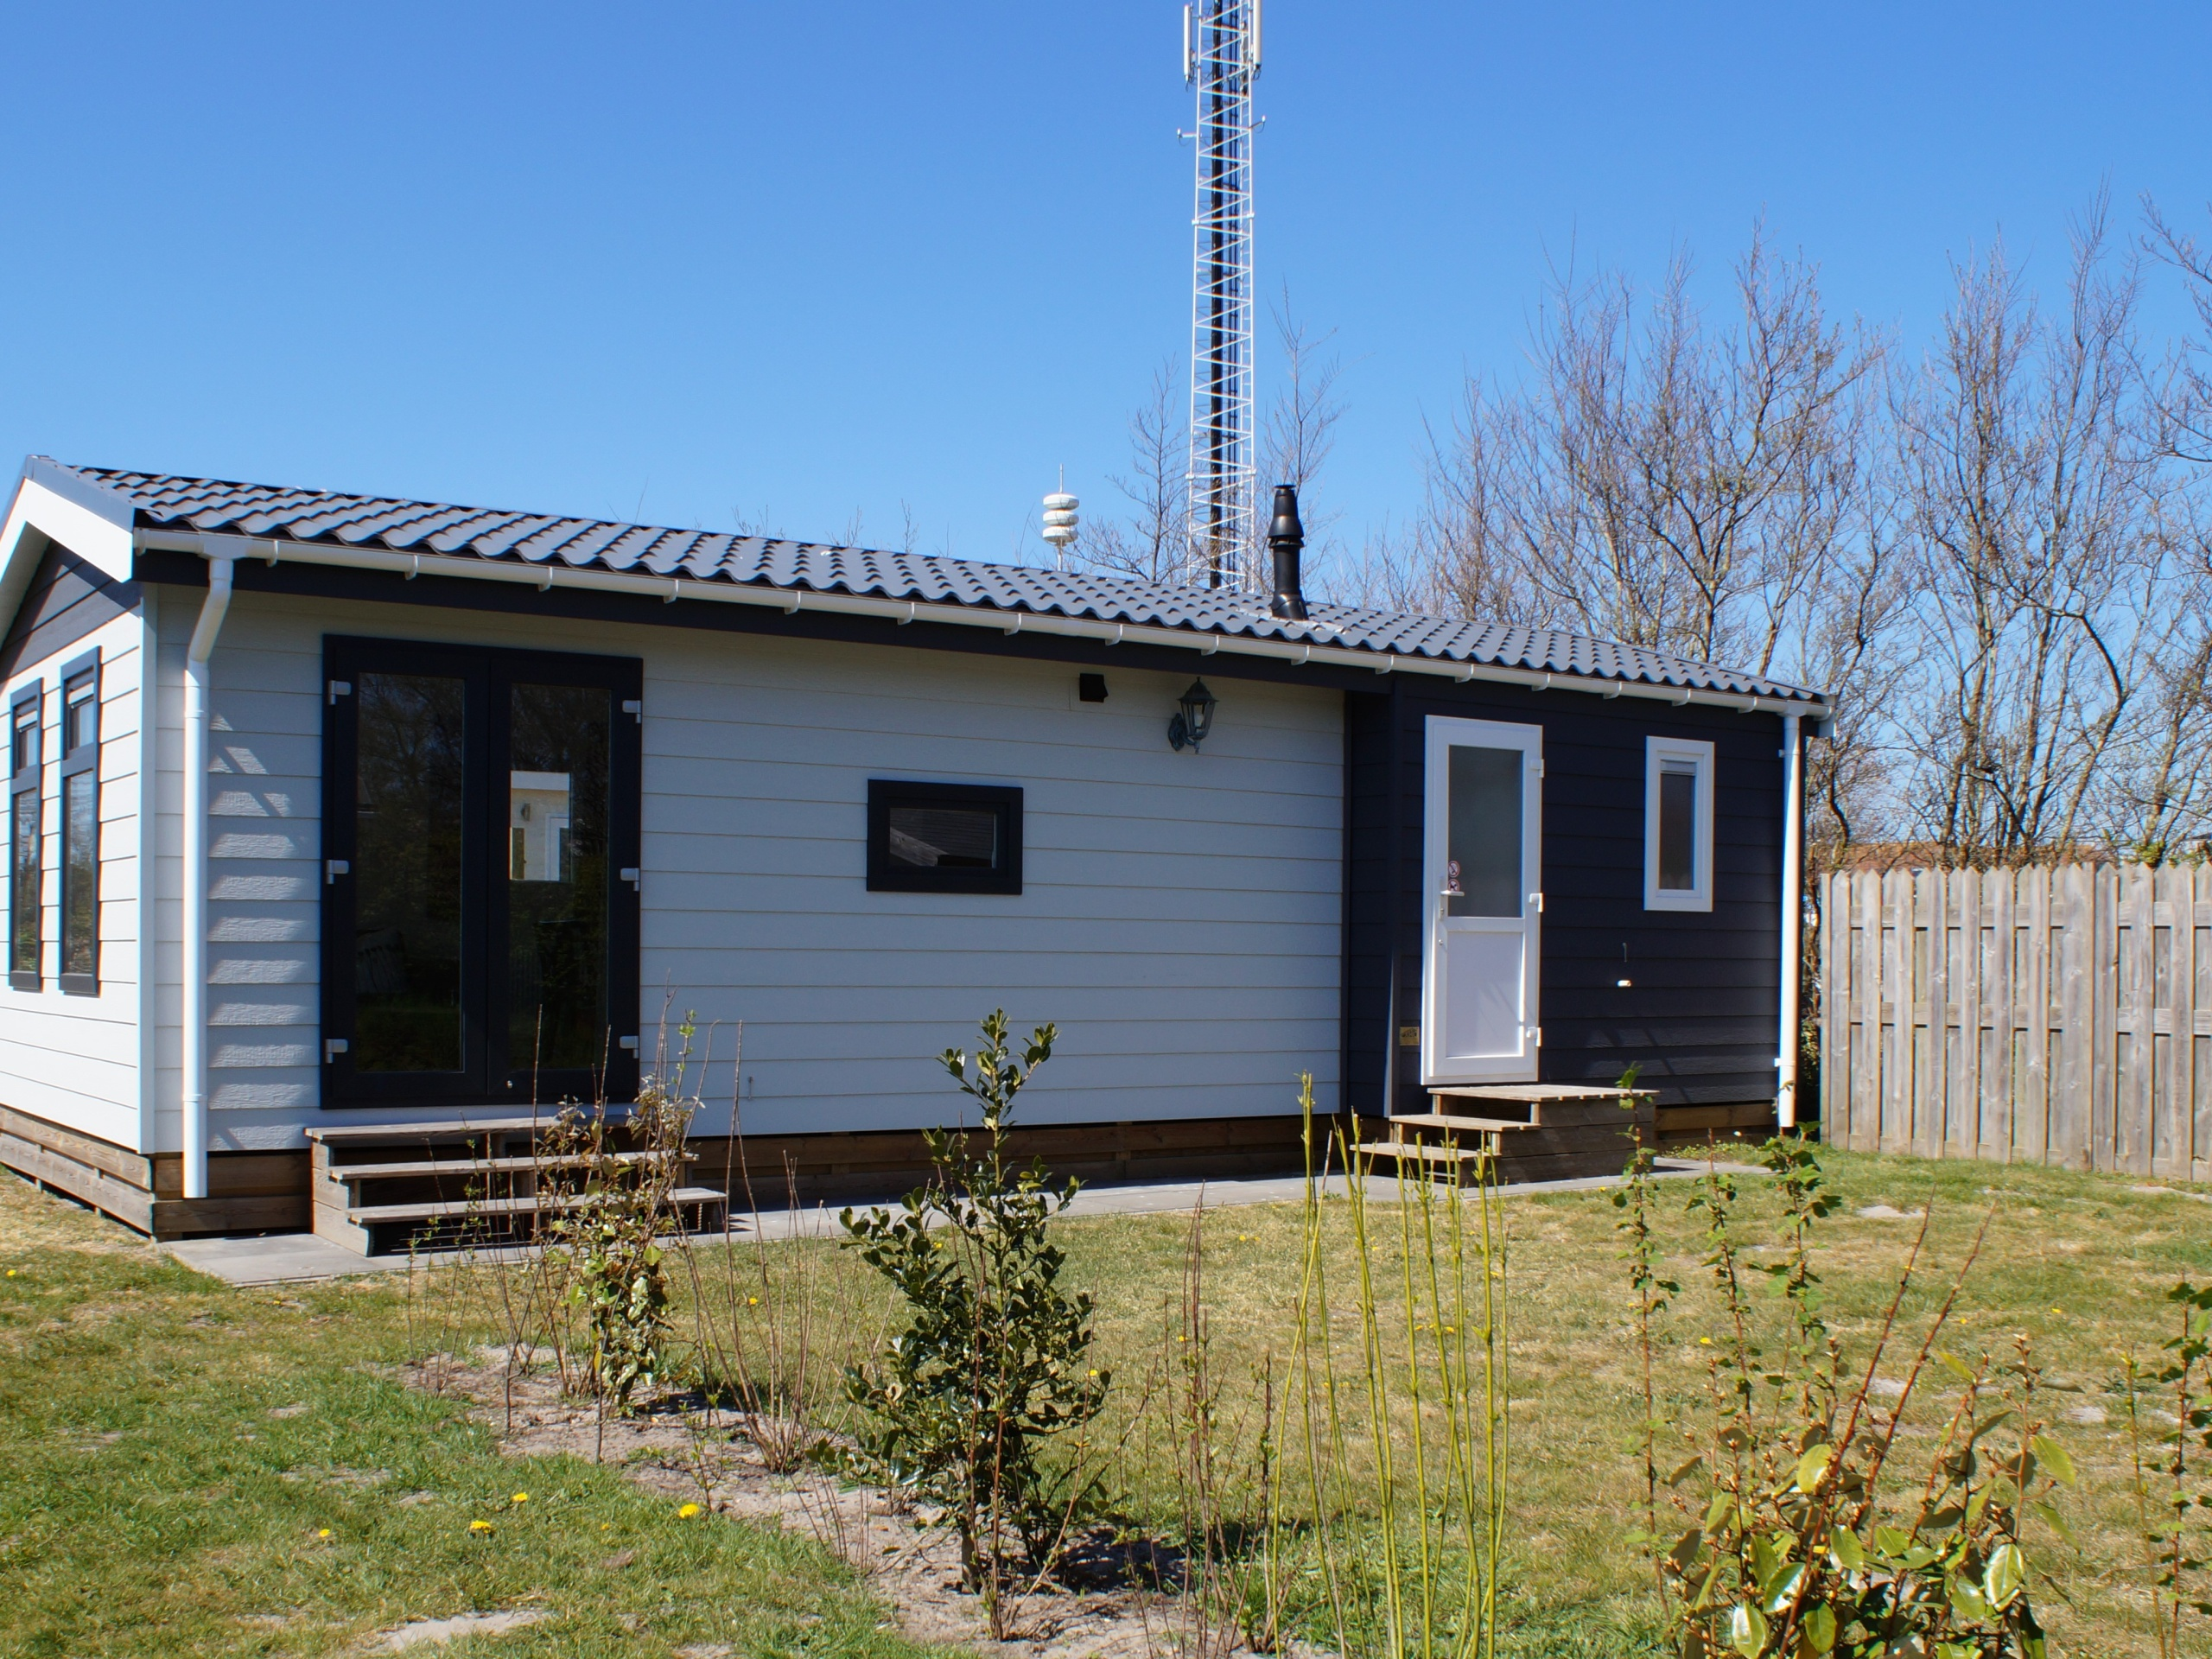 Comfortable modern chalet with an ideal location on a camping site in De Koog